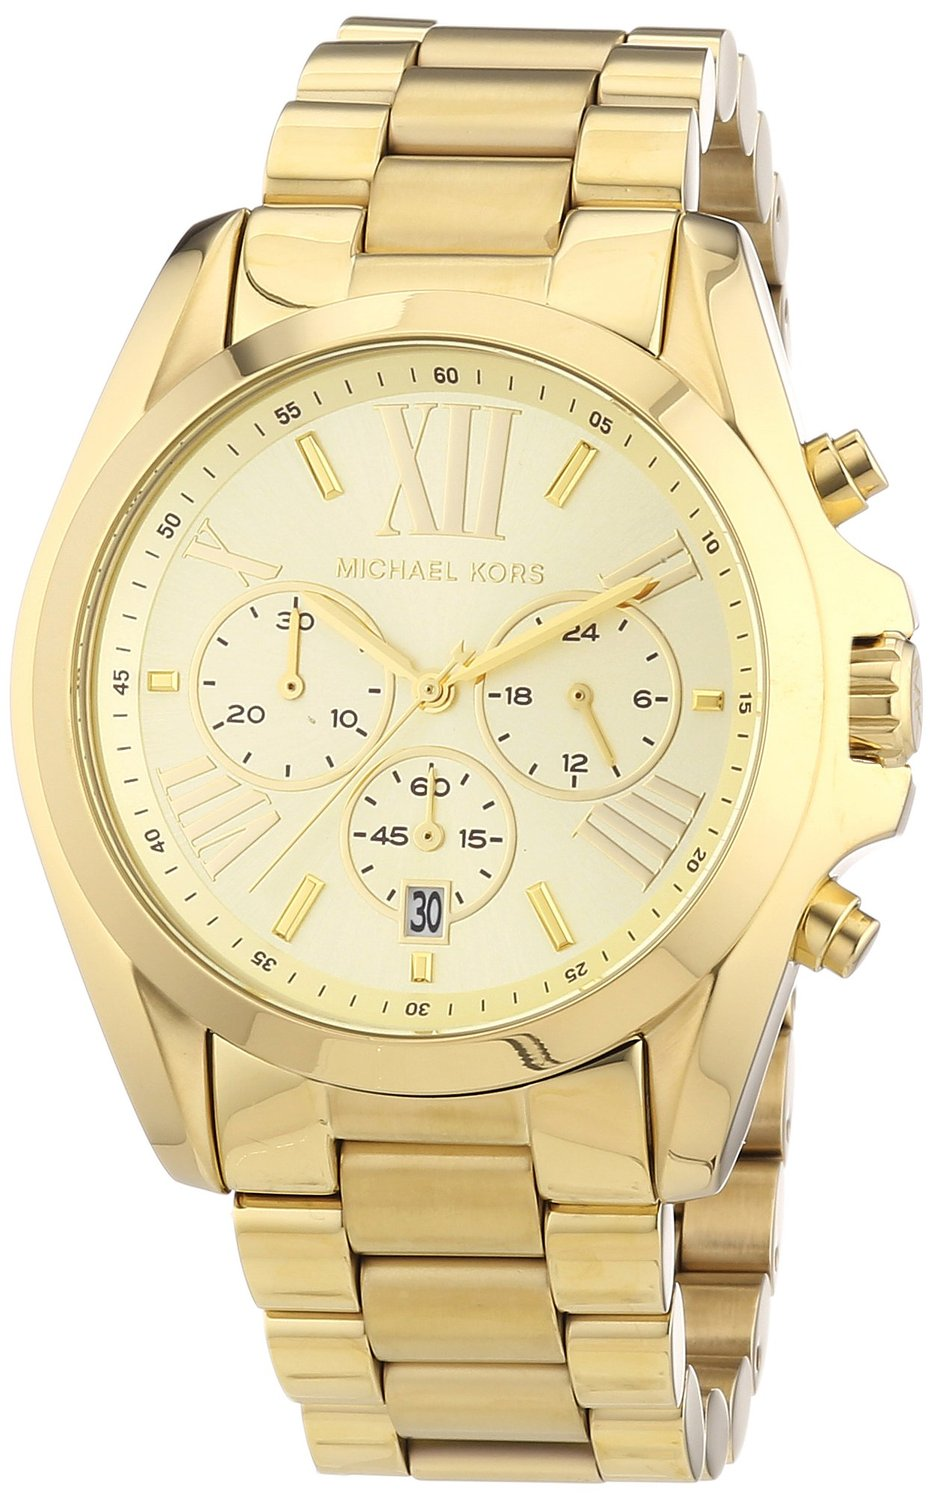 Amazon.com: Michael Kors Bradshaw Chronograph Gold-tone Unisex Watch MK5605: Michael Kors: Watches